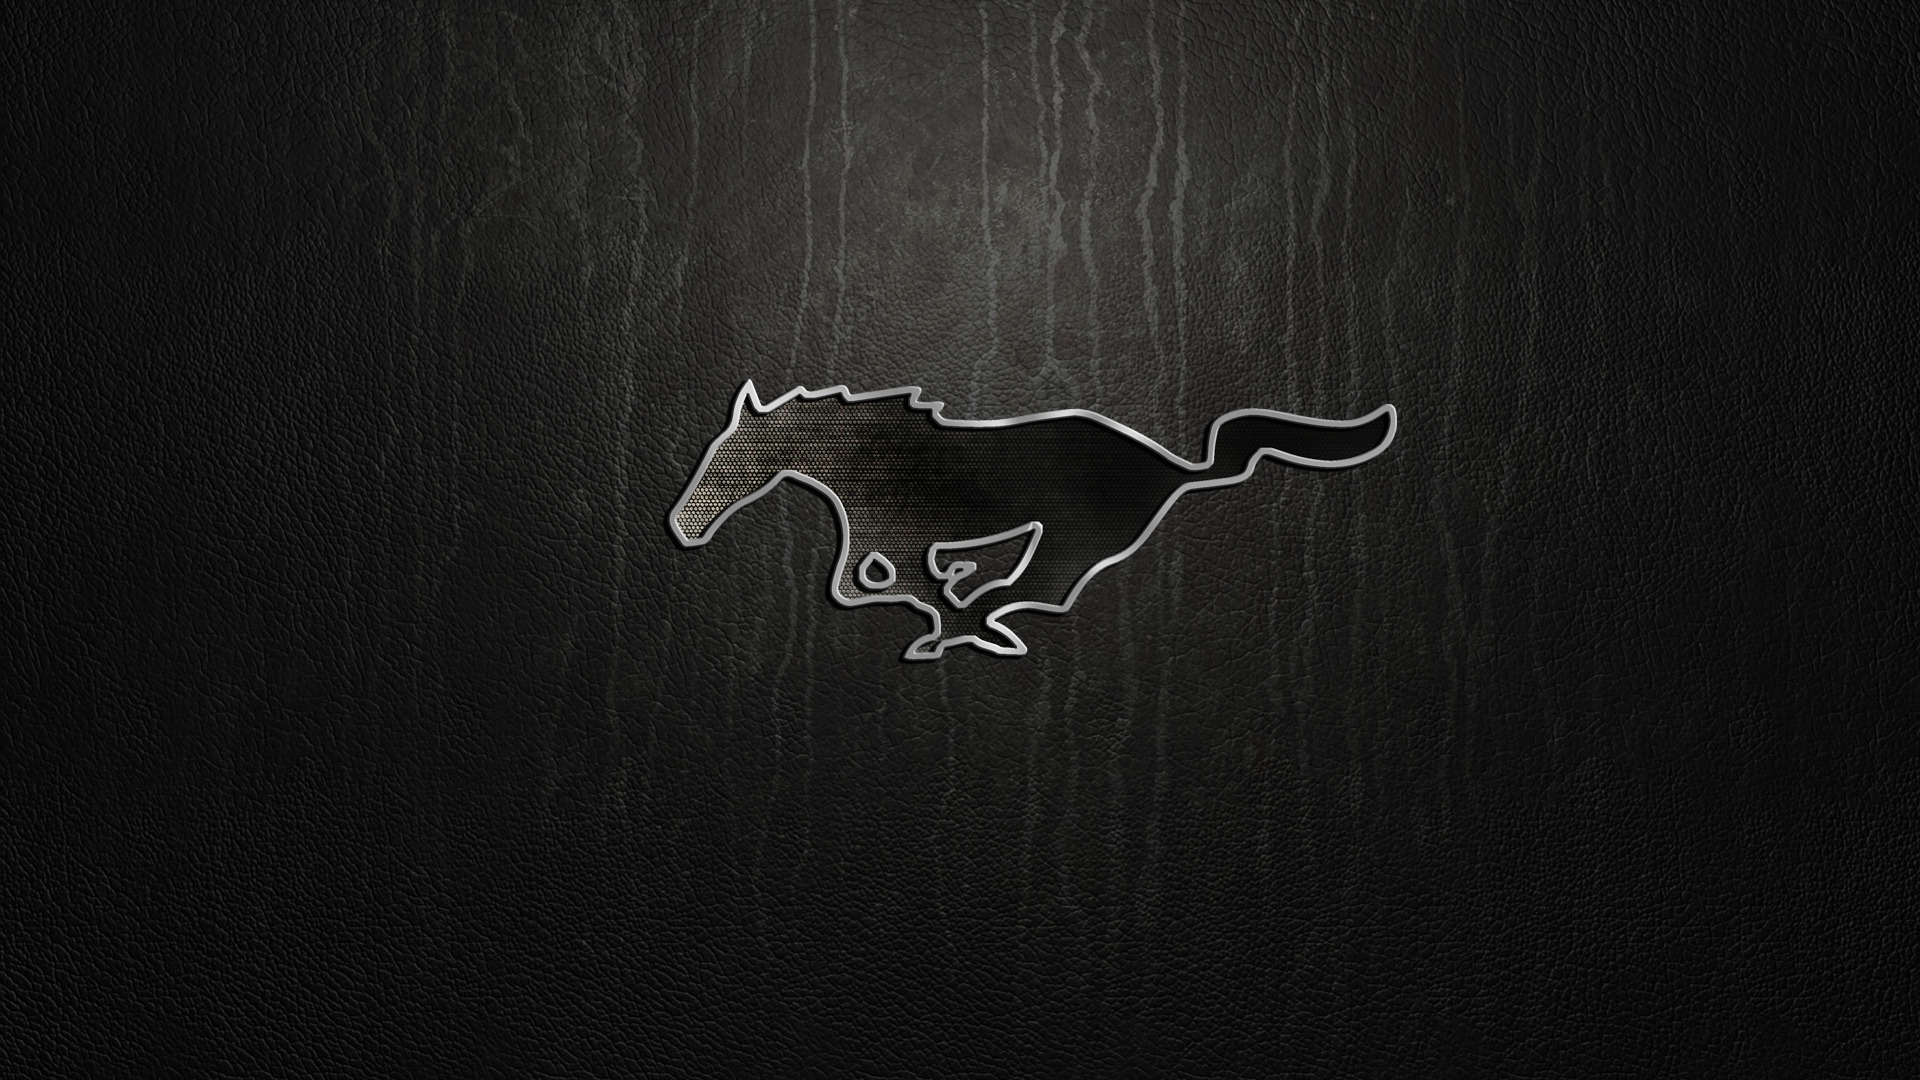 mustang logo wallpaper for iphone gtc mustangs ford 5